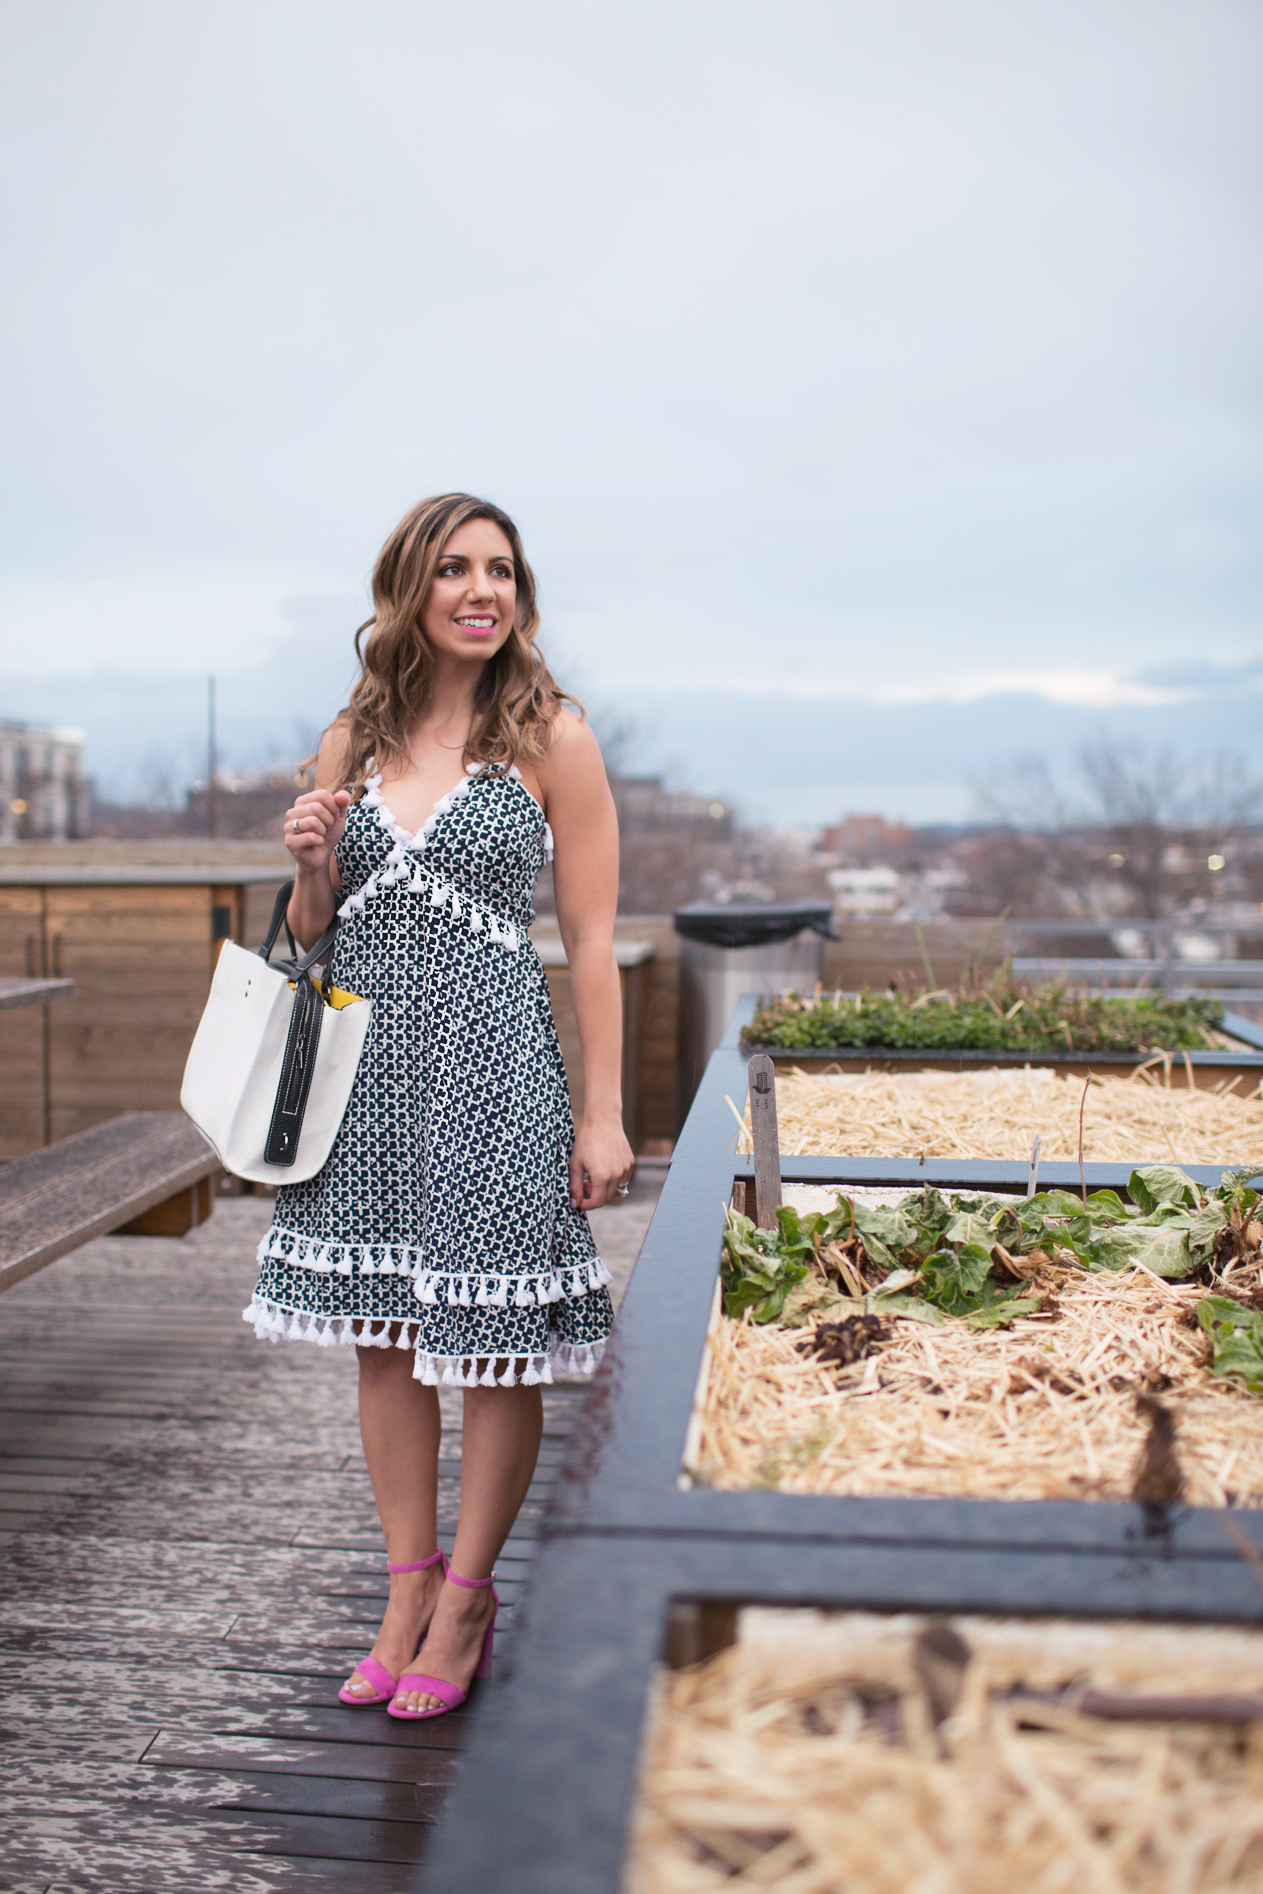 Lifestyle blogger Roxanne of Glass of Glam wearing a Blush and Stone tassel dress and pink heels